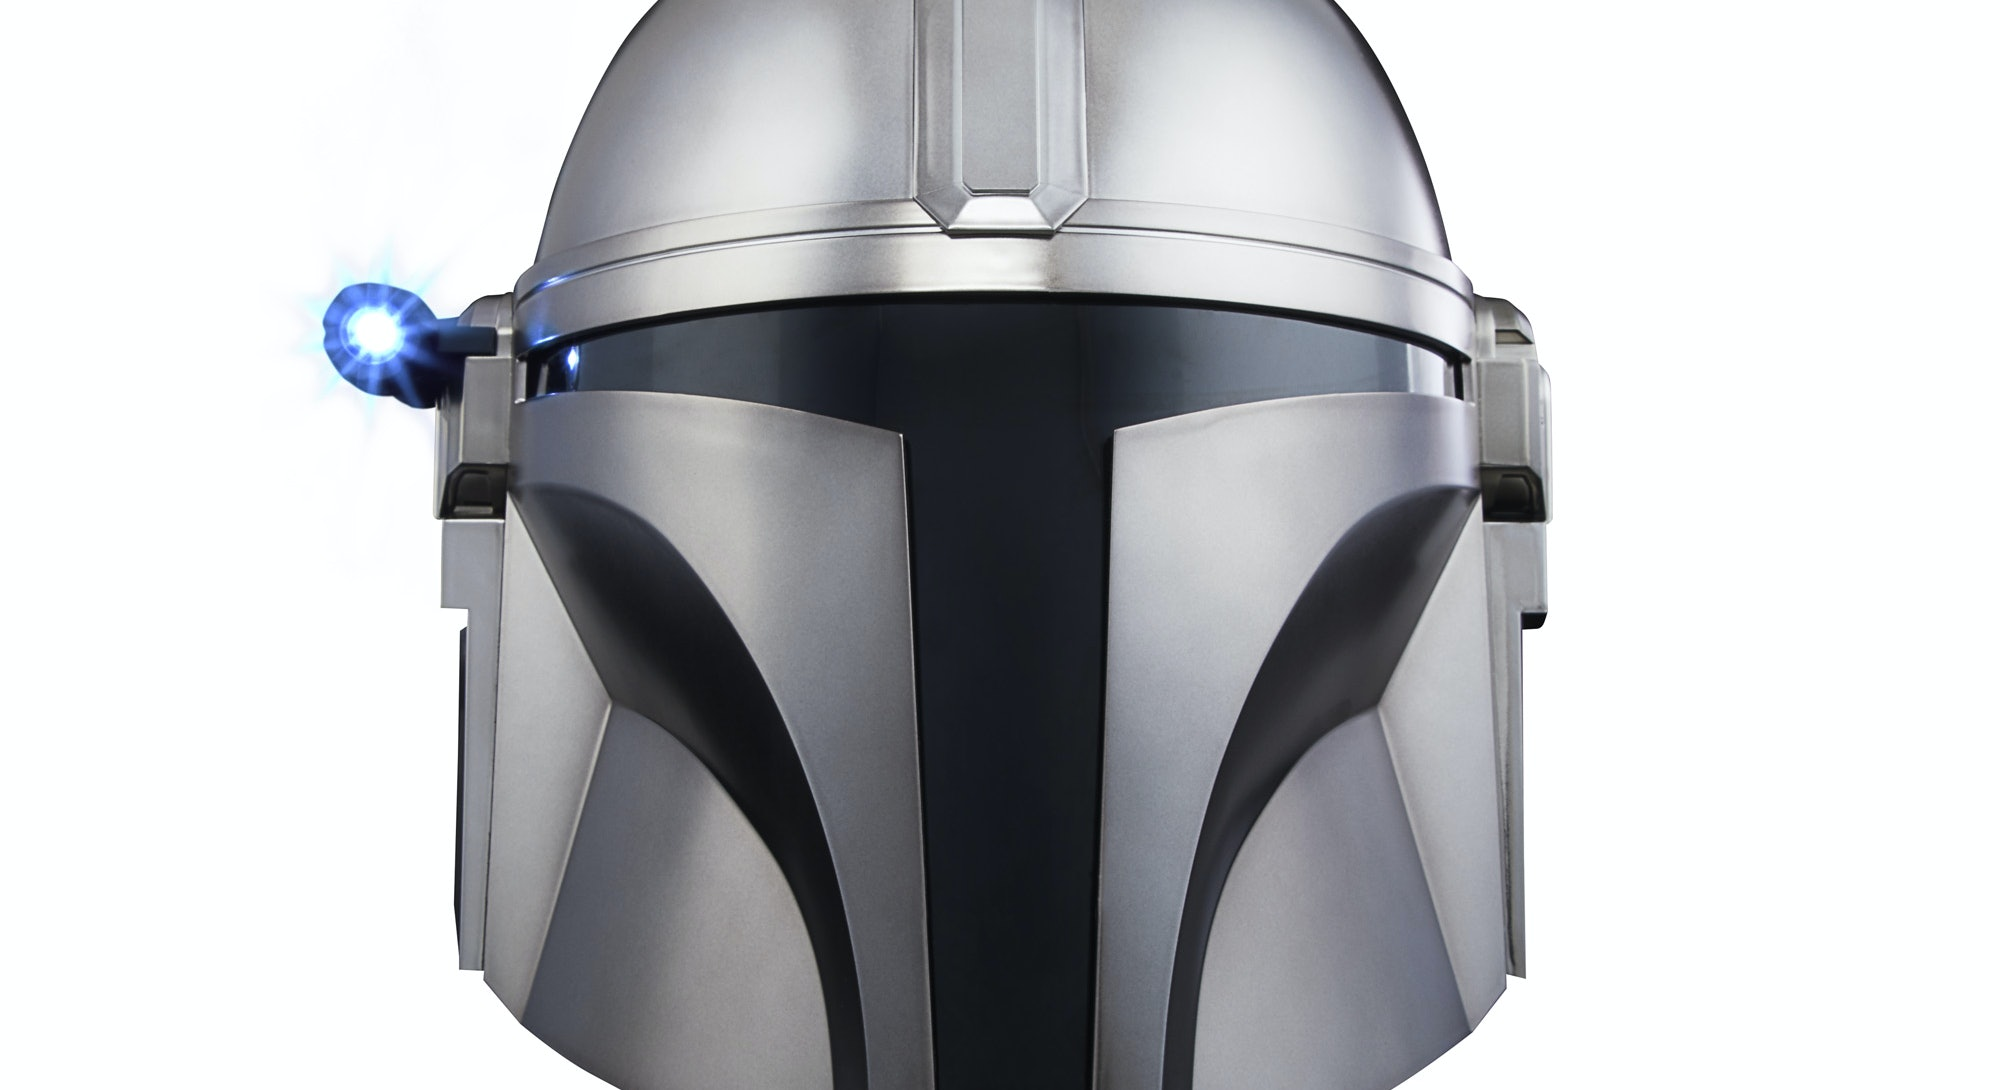 The Mandalorian helmet from Hasbro sells for $119.99 and will go on sale in Spring 2021.